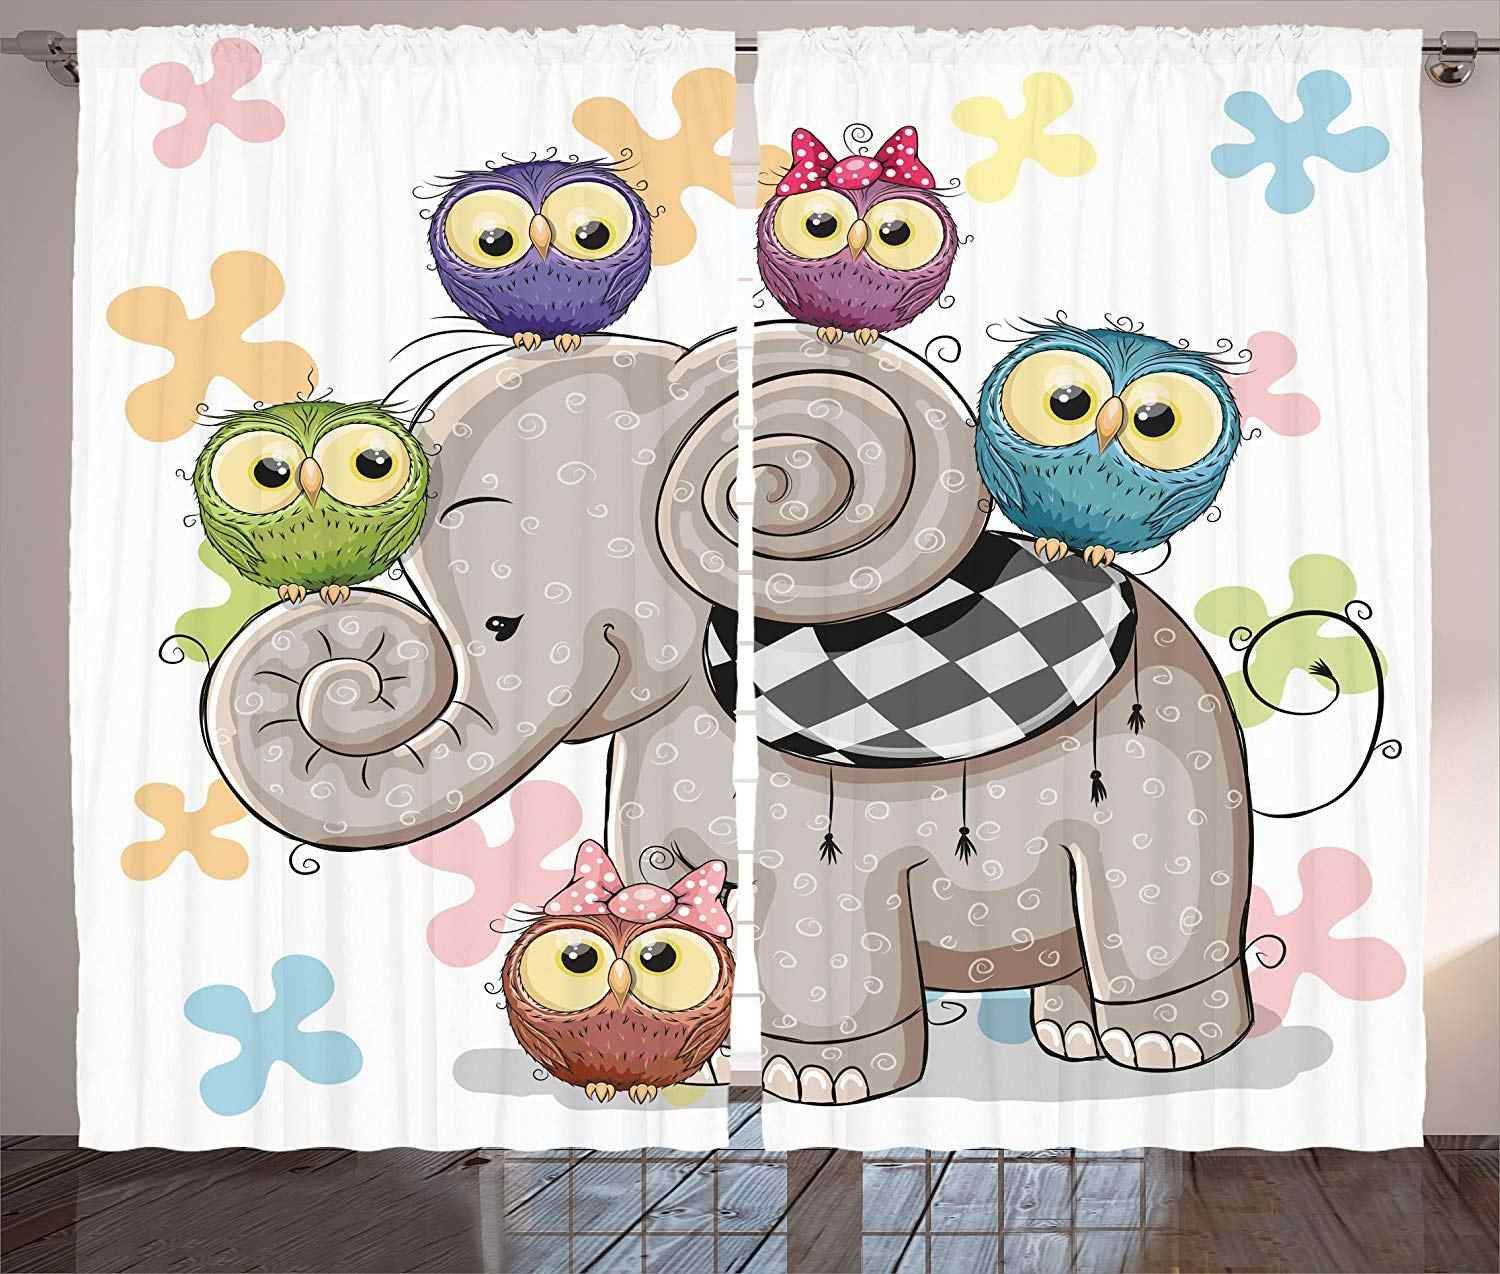 Owl Curtains Home Decor Cute Cartoon Elephant and Owls on a Floral Background Animal Love Big Eyes Boys Girls Decor Living